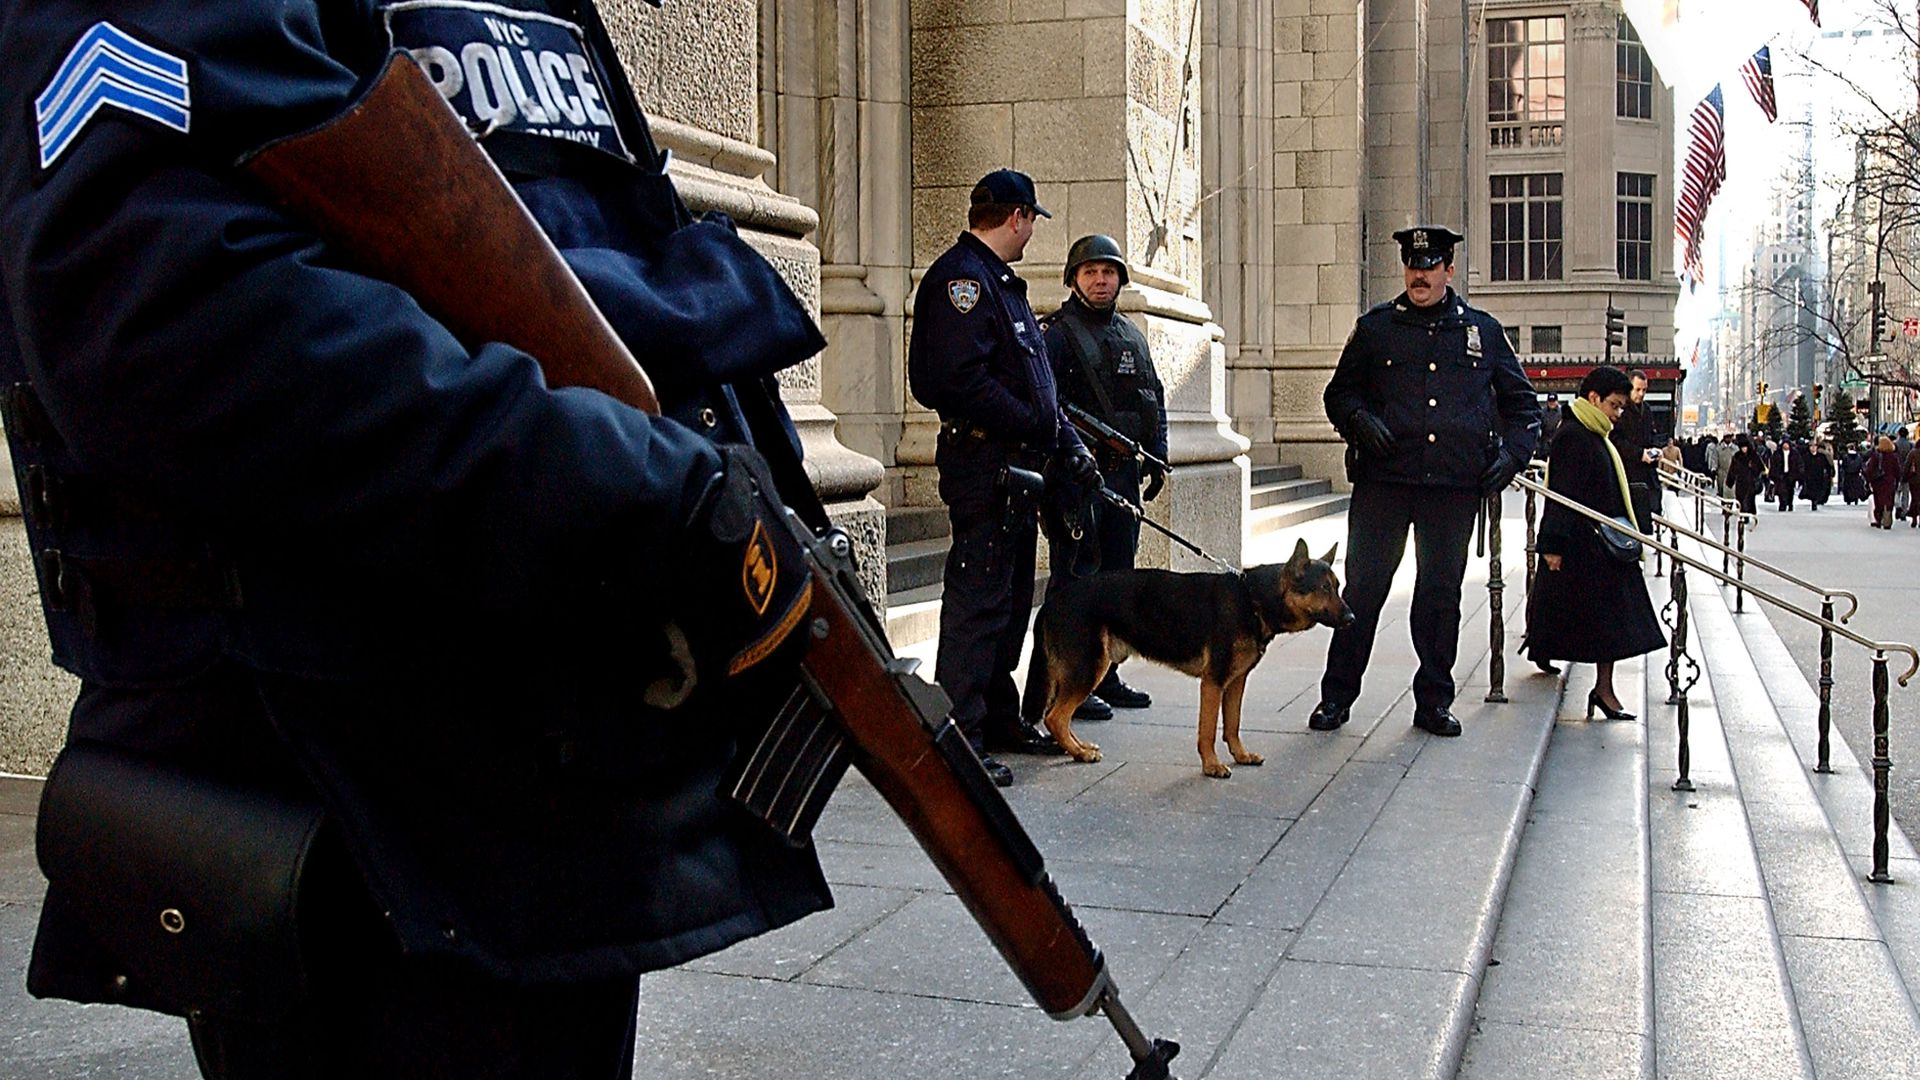 New York police officers stand guard in front of St. Patricks Cathedral February 12, 2003 in New York City.